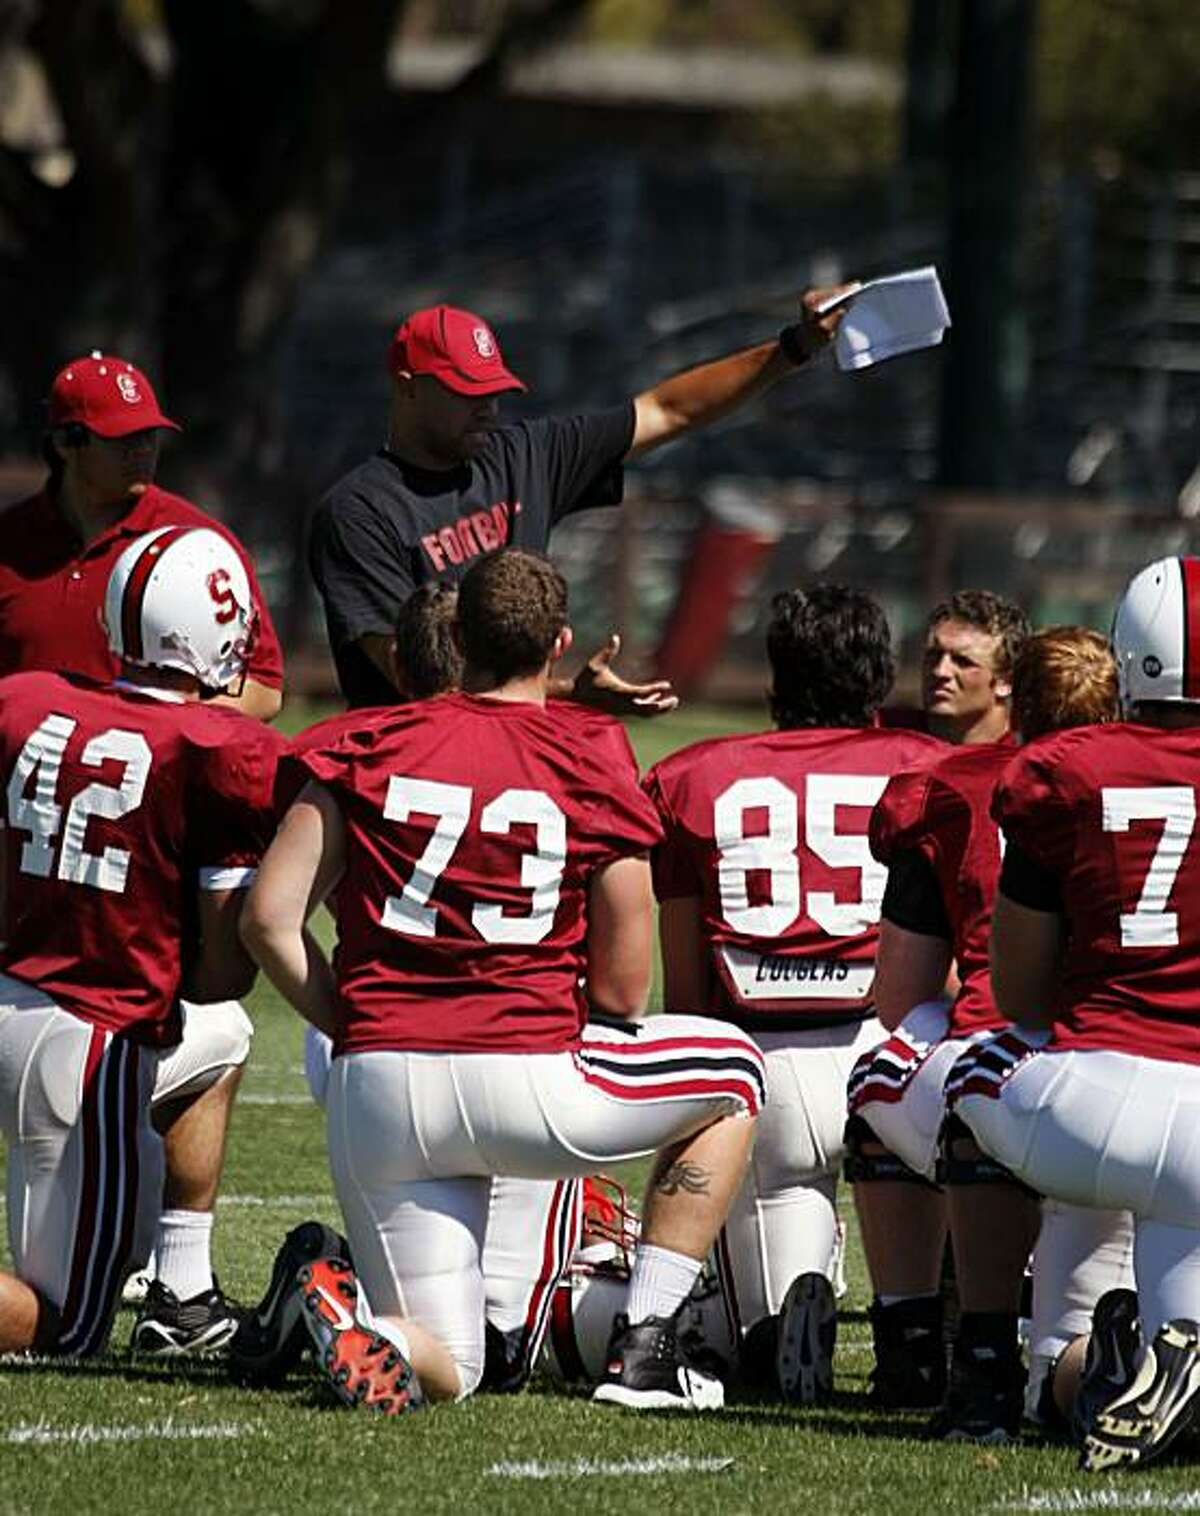 Stanford Assistant coach and former player David Shaw gives the offence instructions during team practice. Stanford's 2007 football team prepares for their first conference game Sept 1st when they play UCLA. August 14, 2007.